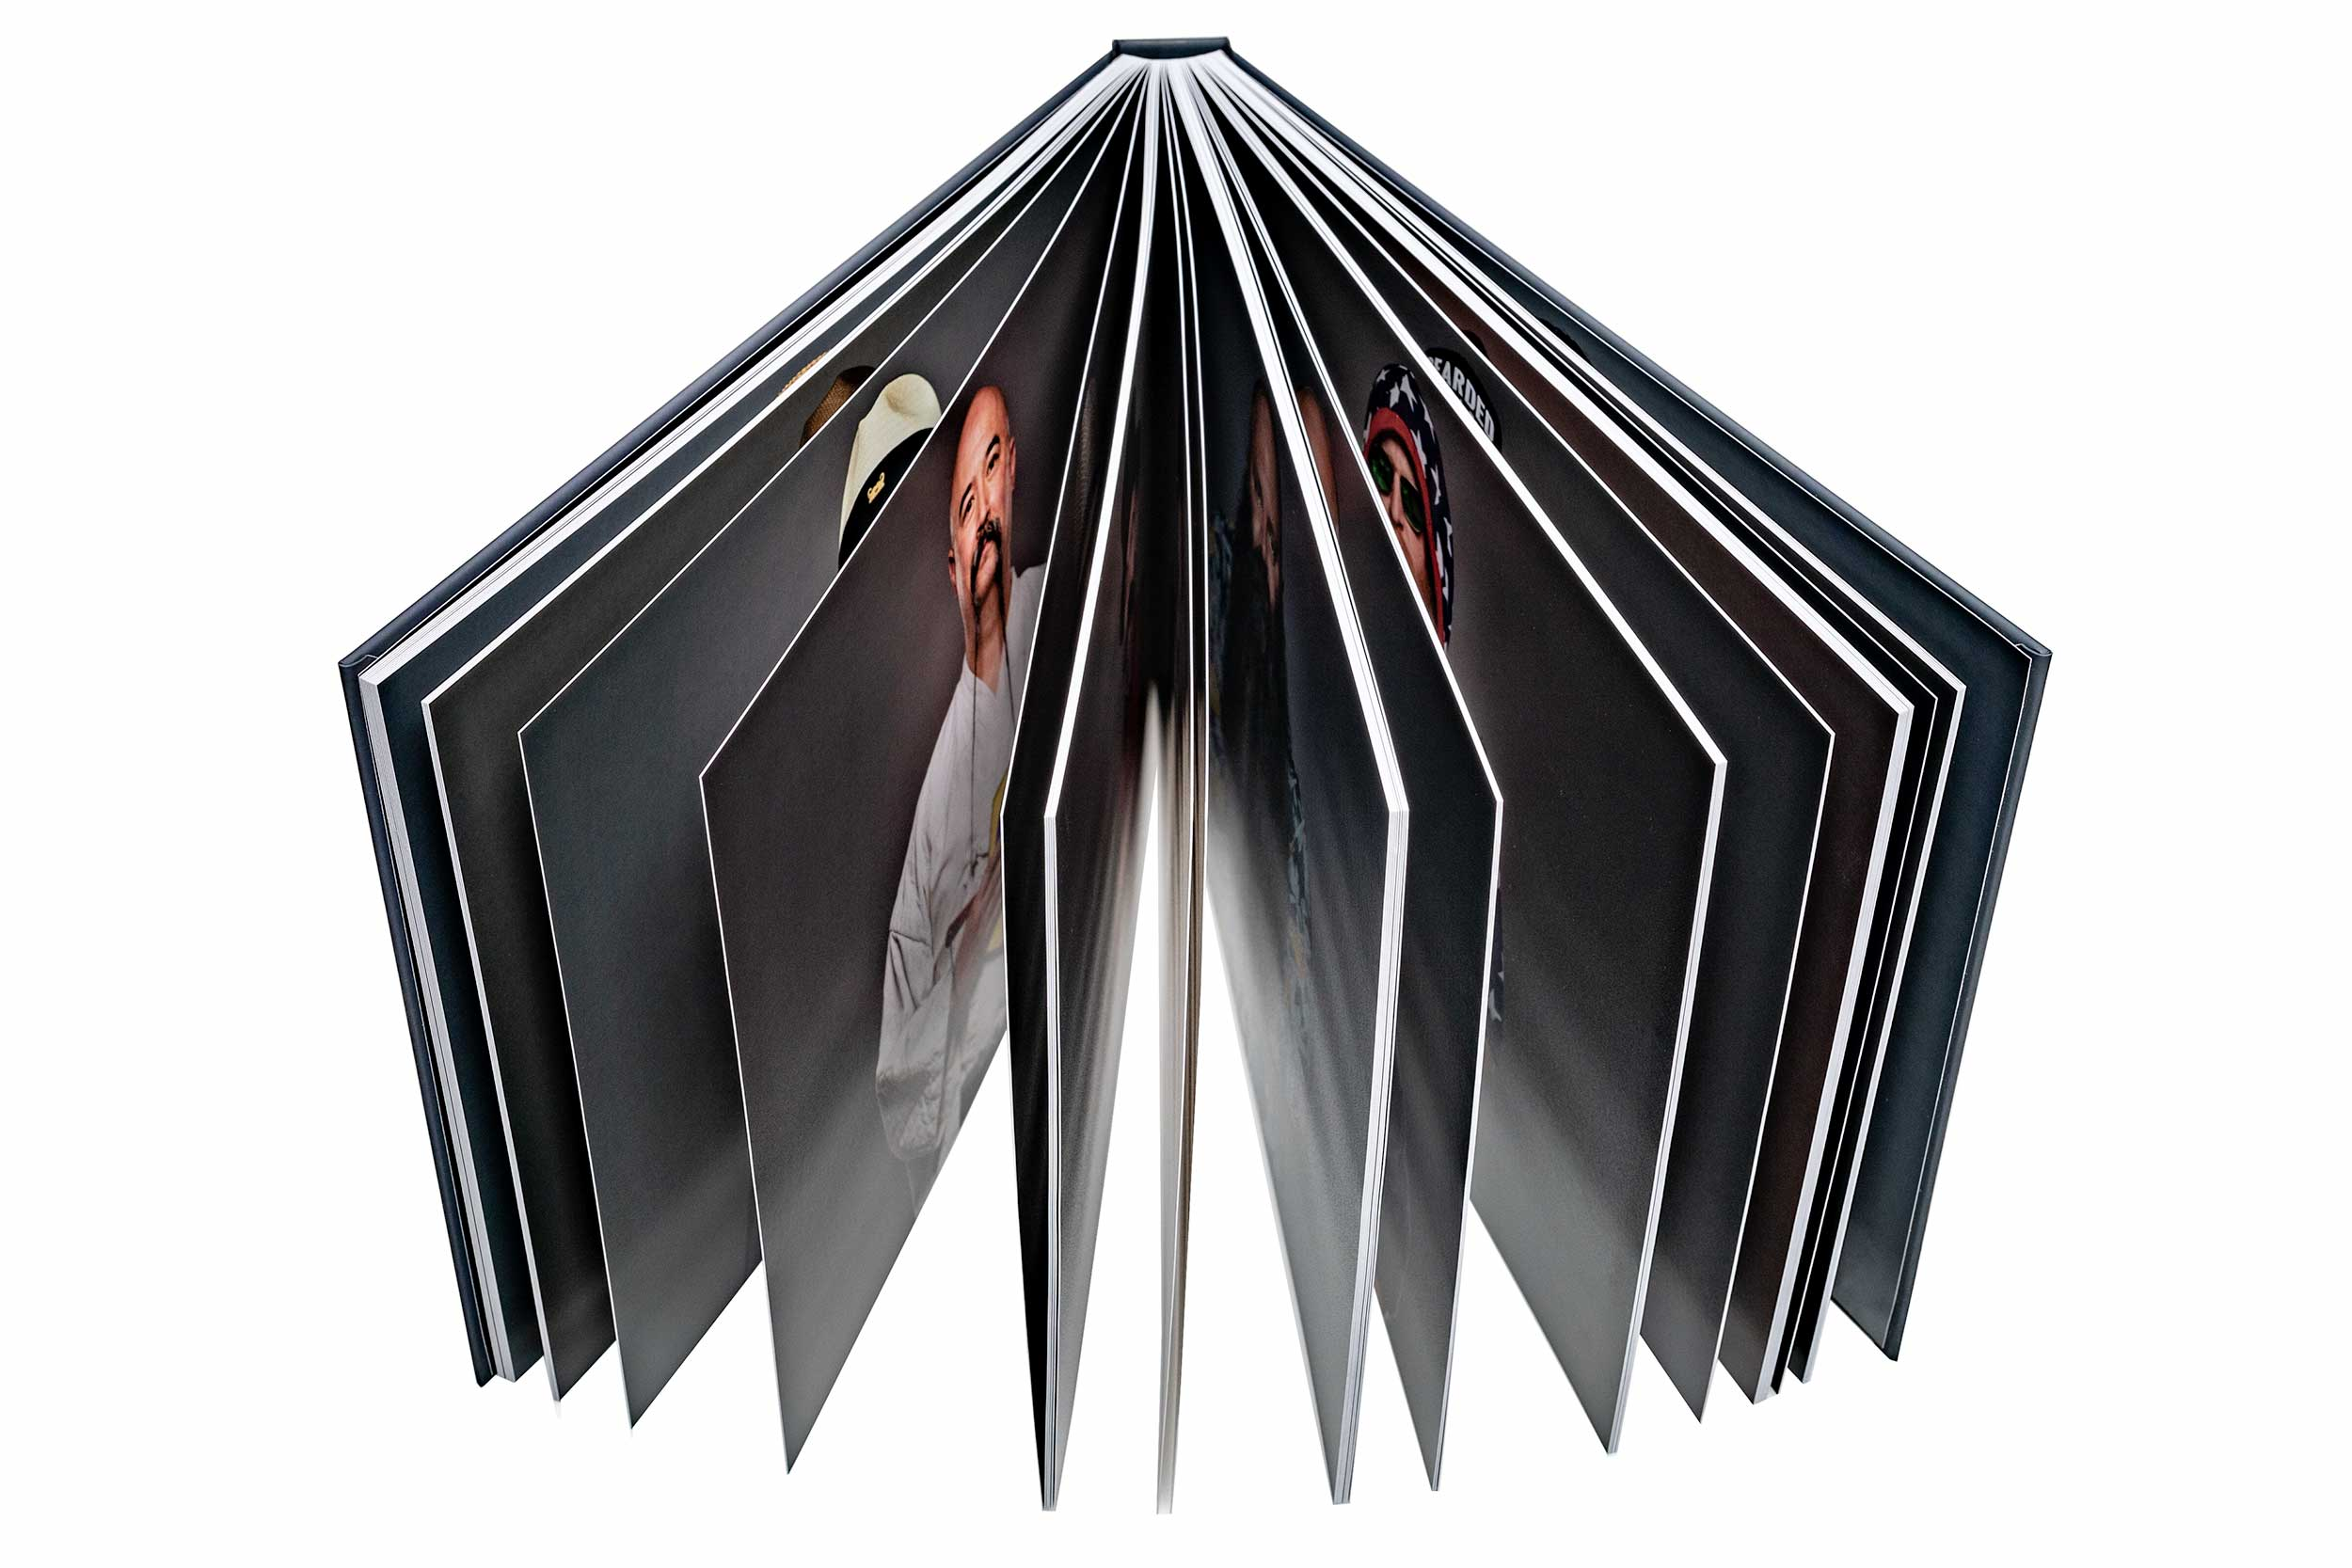 high-end photo book - Matte finishRich high-density colorsMounted on a thick substrate.